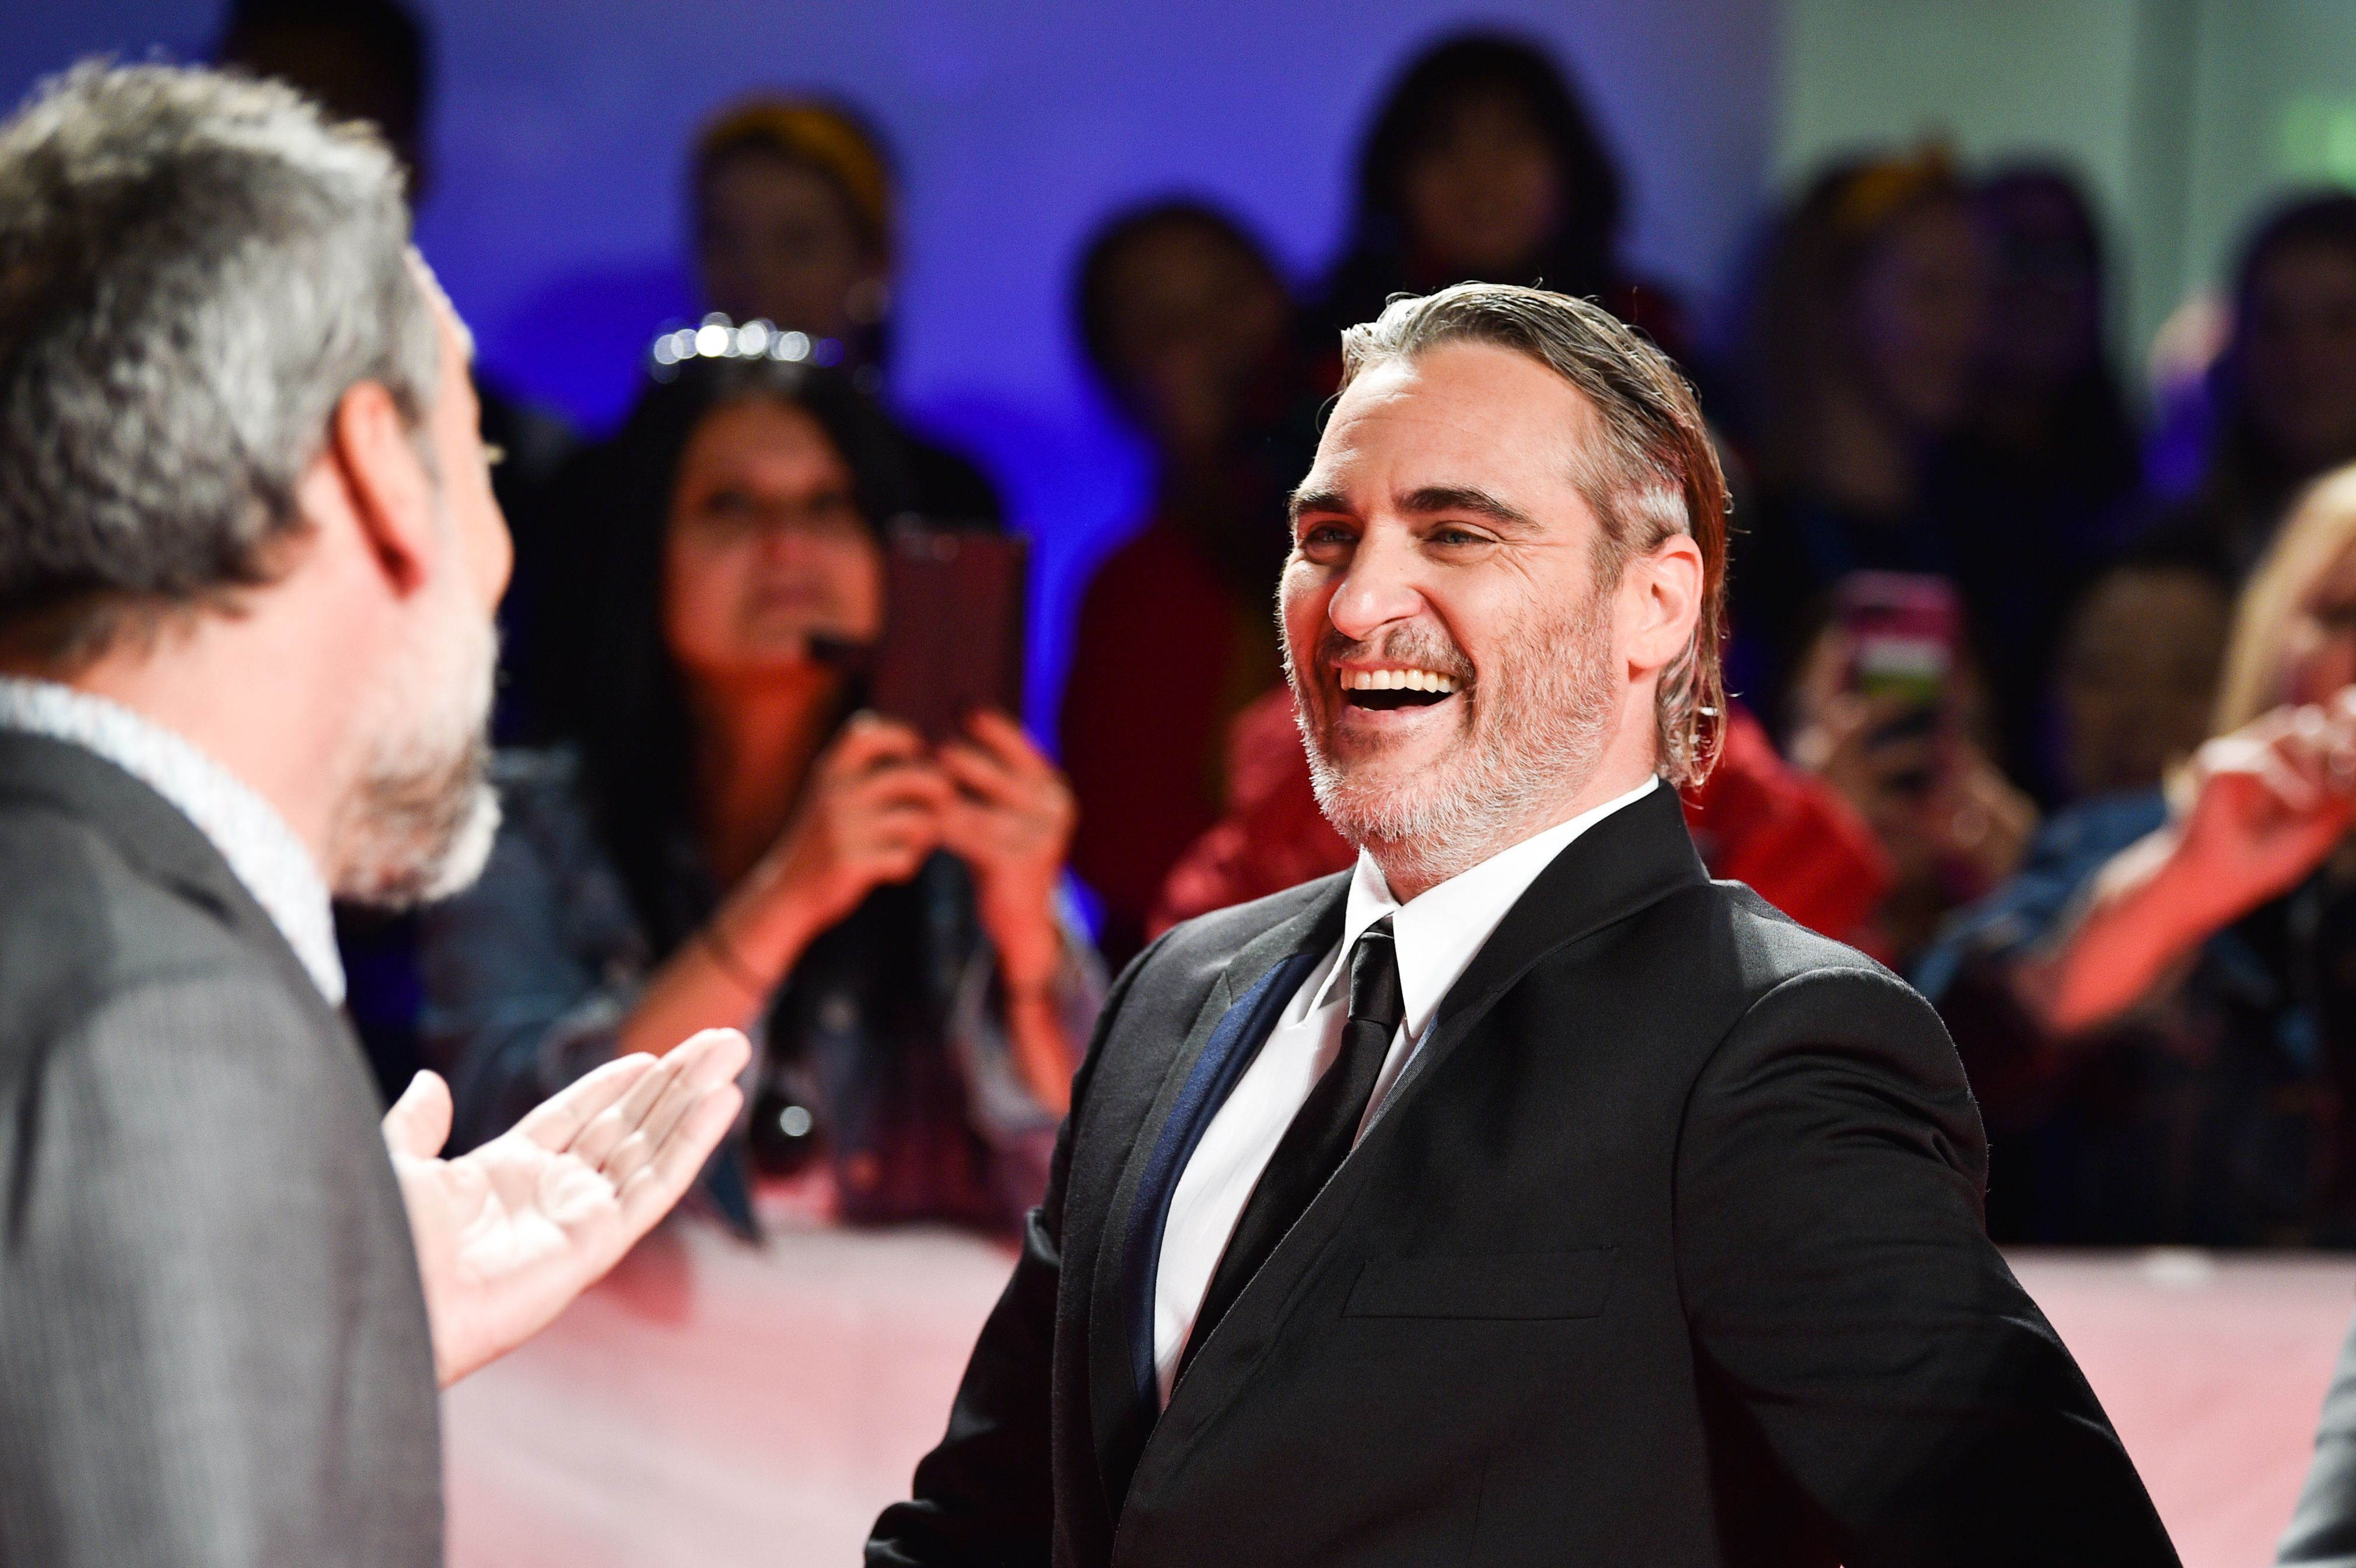 TIFF 2019: Meryl Streep and Joaquin Phoenix, Paying Tribute to Late Brother River, Launch Oscar Bids